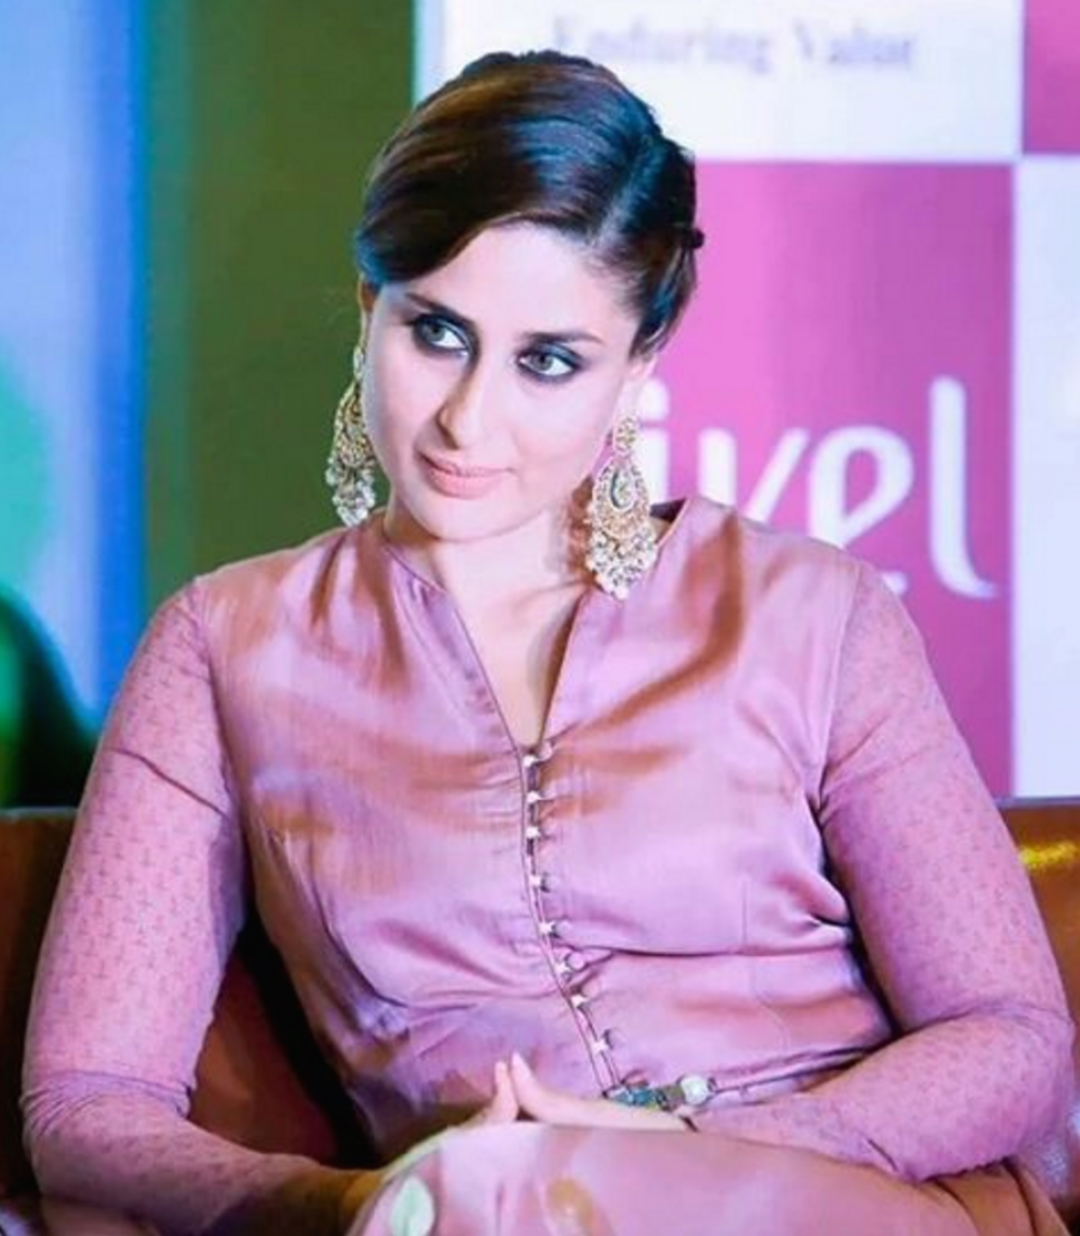 Kareena Kapoor HD Wallpapers (Desktop Background / Android / iPhone) (1080p, 4k) (34327) - Kareena Kapoor